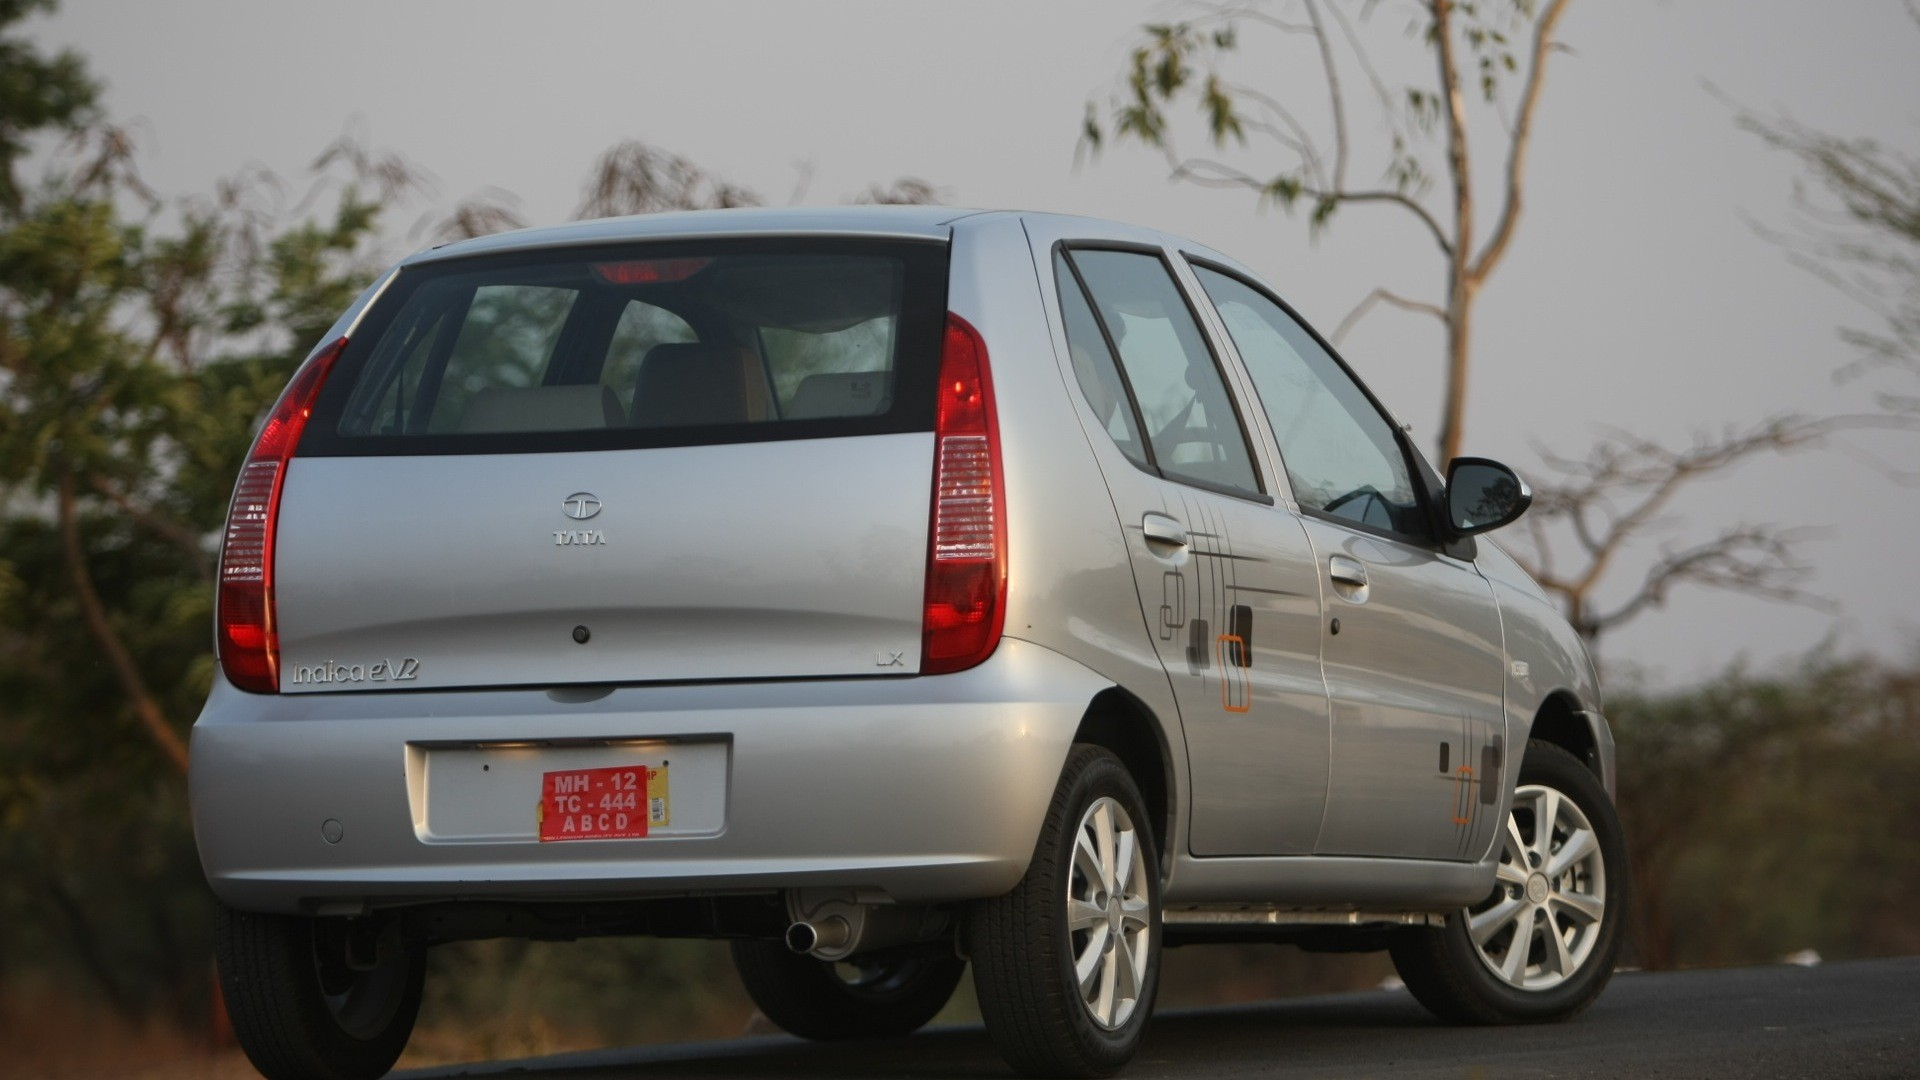 Tata Indica Engine Diagram Tata Indica 2013 Bs Iii Ls Price Mileage Reviews Of Tata Indica Engine Diagram Tata Indica